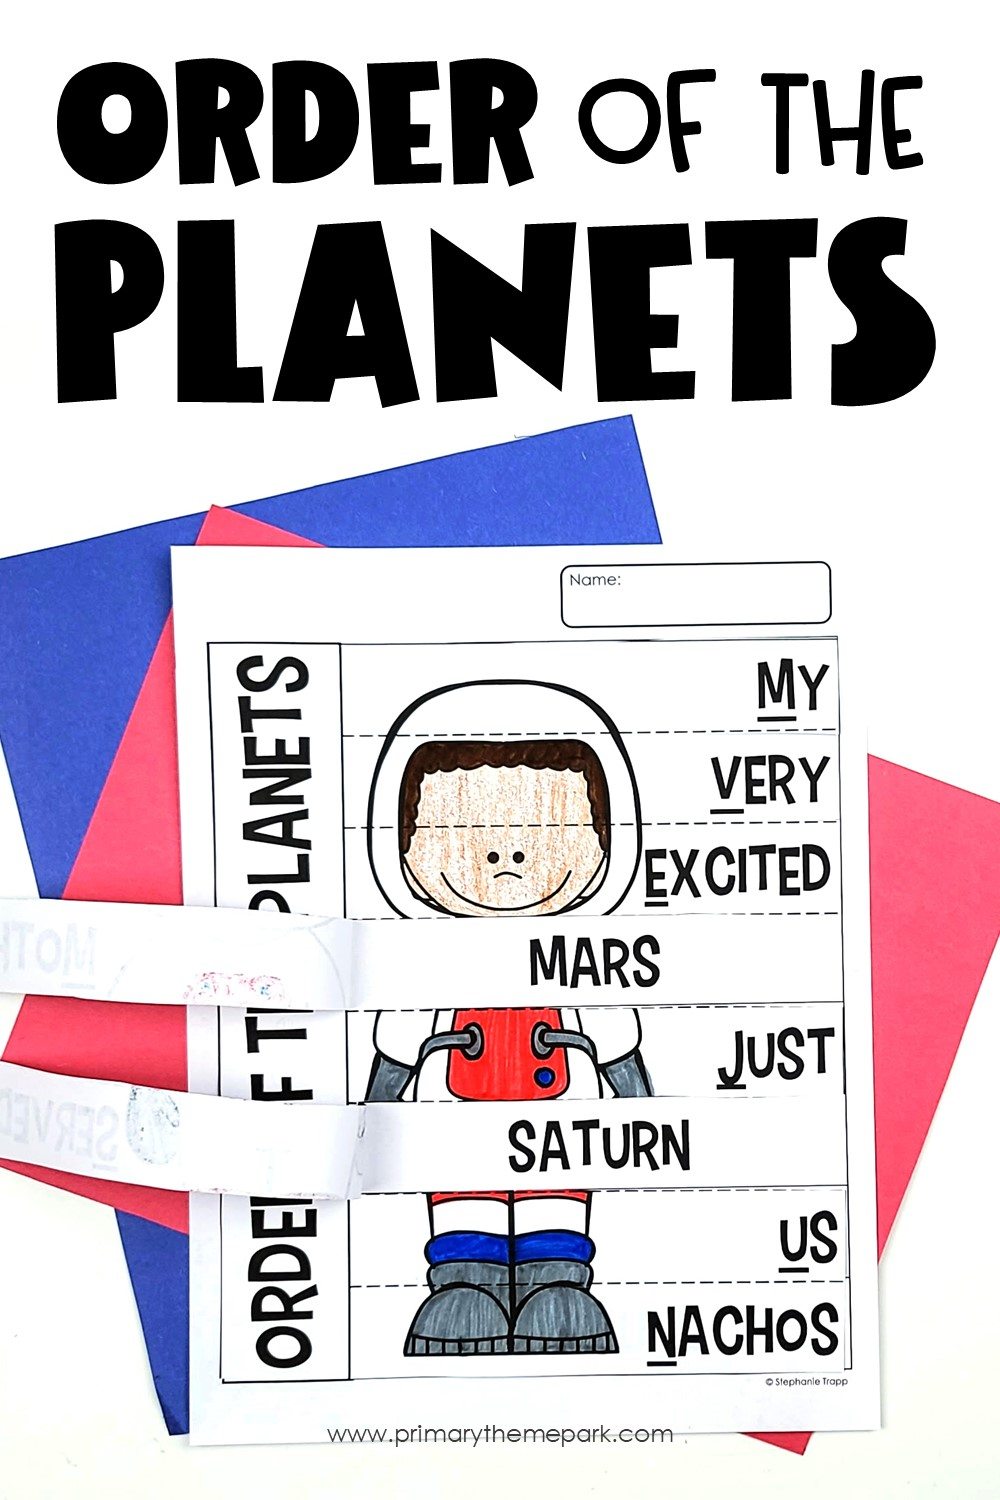 Order of the planets mnemonic device where students lift a flap to reveal the name of the planet that matches that word in the mnemonic device